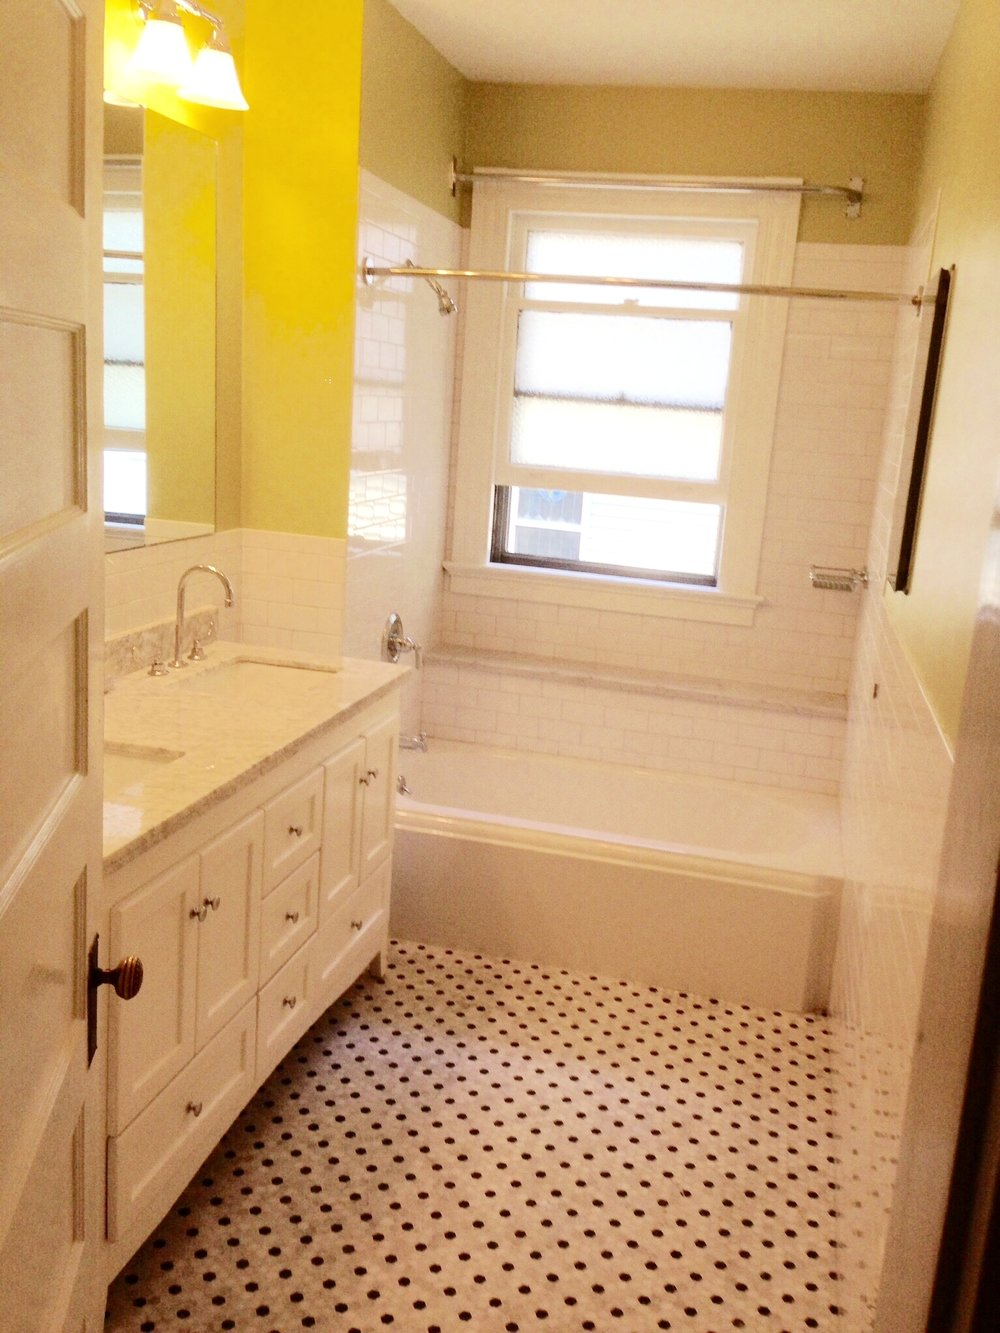 Marble hex floor, kohler memoirs tub, subway tile.windows can be a problem. so we built in a shelf, and put in a curtain